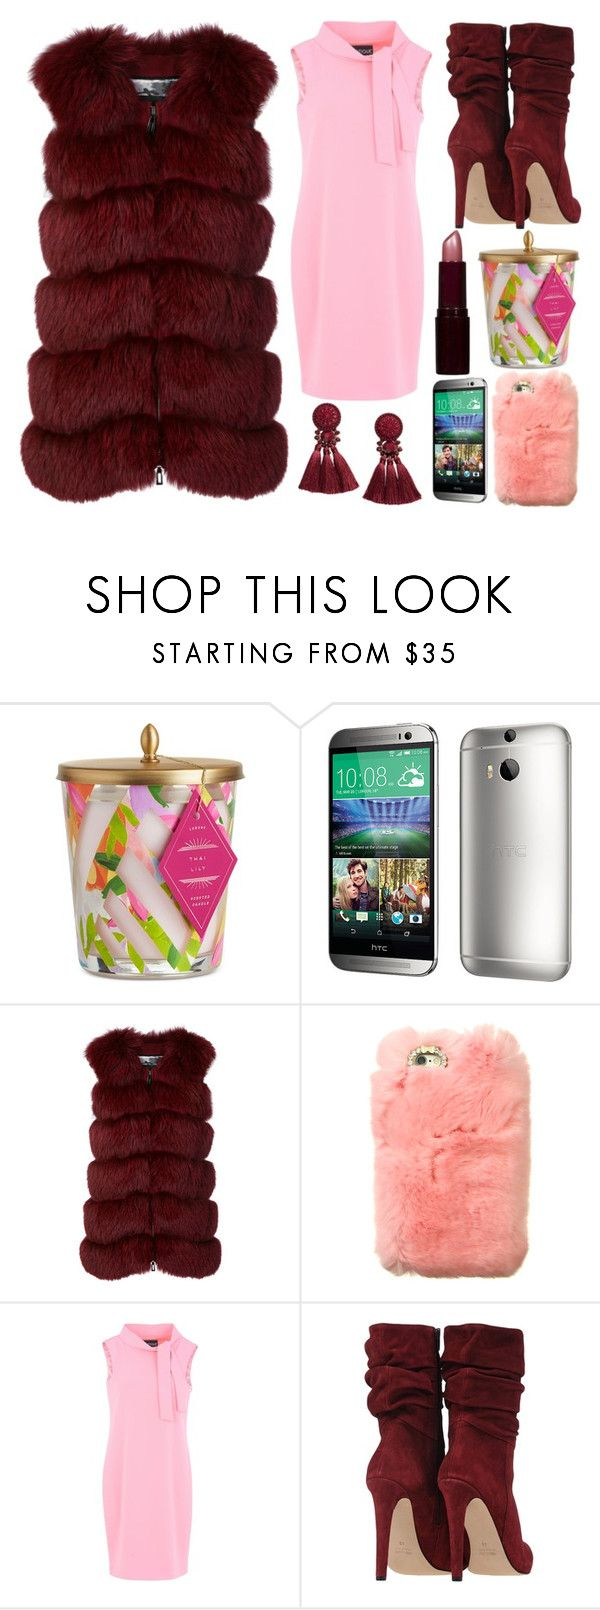 """""""Shop Jeen Furry Iphone Case"""" by ann-kelley14 ❤ liked on Polyvore featuring Illume, HTC, Cara Mila, Boutique Moschino and Rimmel"""